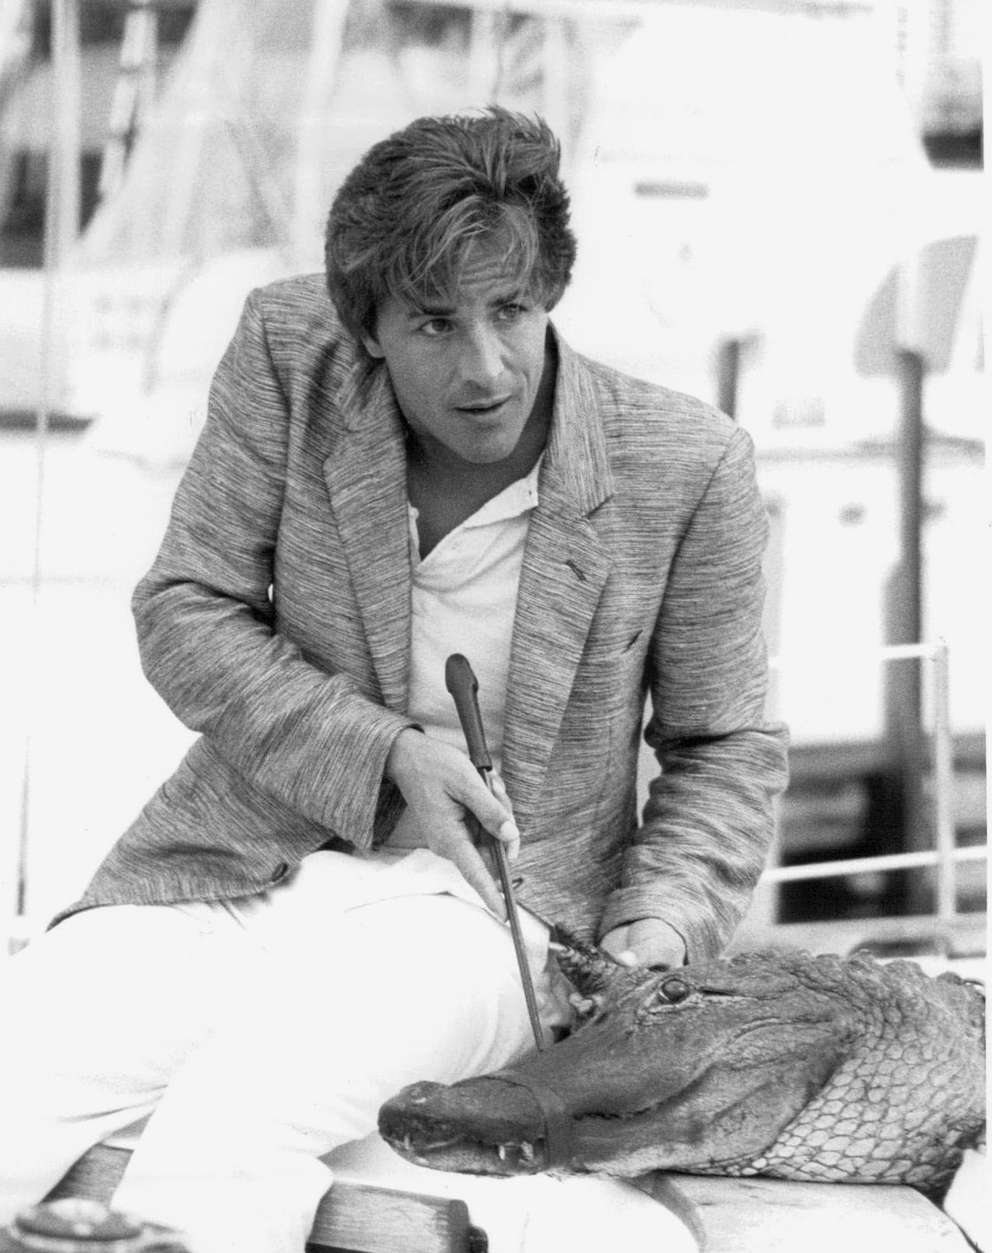 Detective Crockett (played by Don Johnson) carefully puts the clamps on Elvis, his pet alligator, before continuing his undercover assignment on NBC-TV's Miami Vice in 1985. [Times archives]